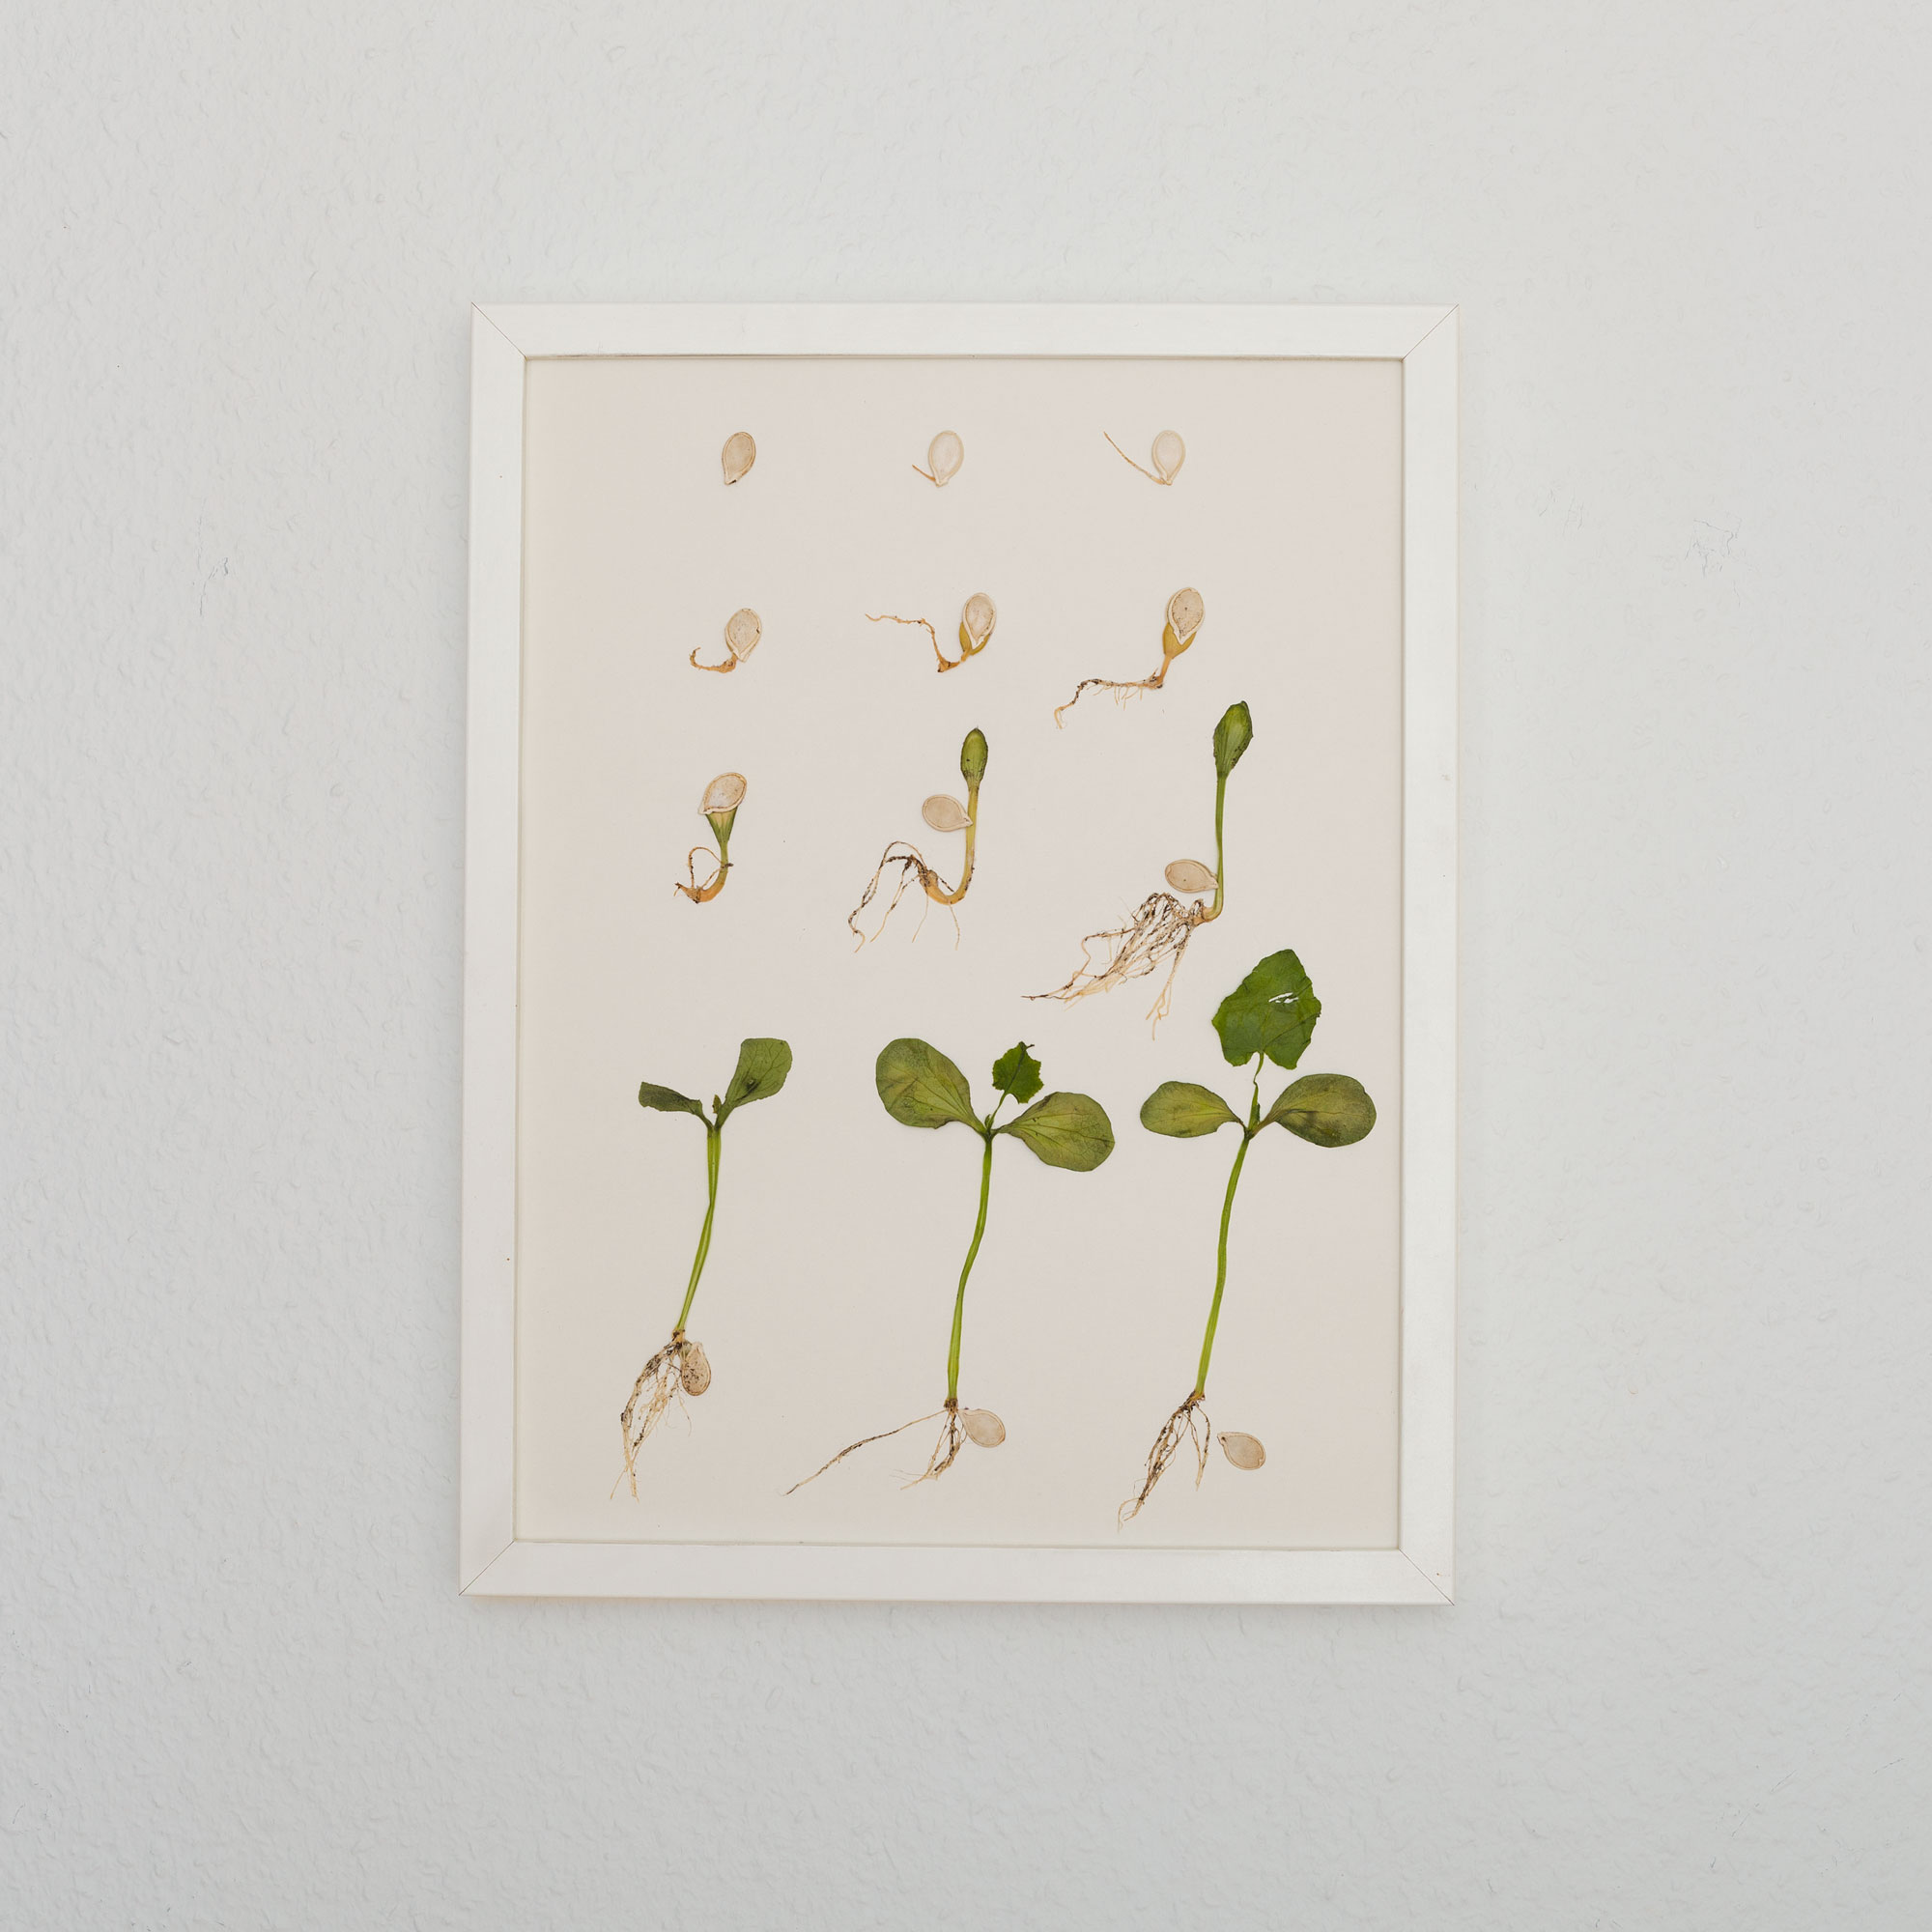 Baby steps, 2019. Sprouted and dried pumpkin seeds on paper.